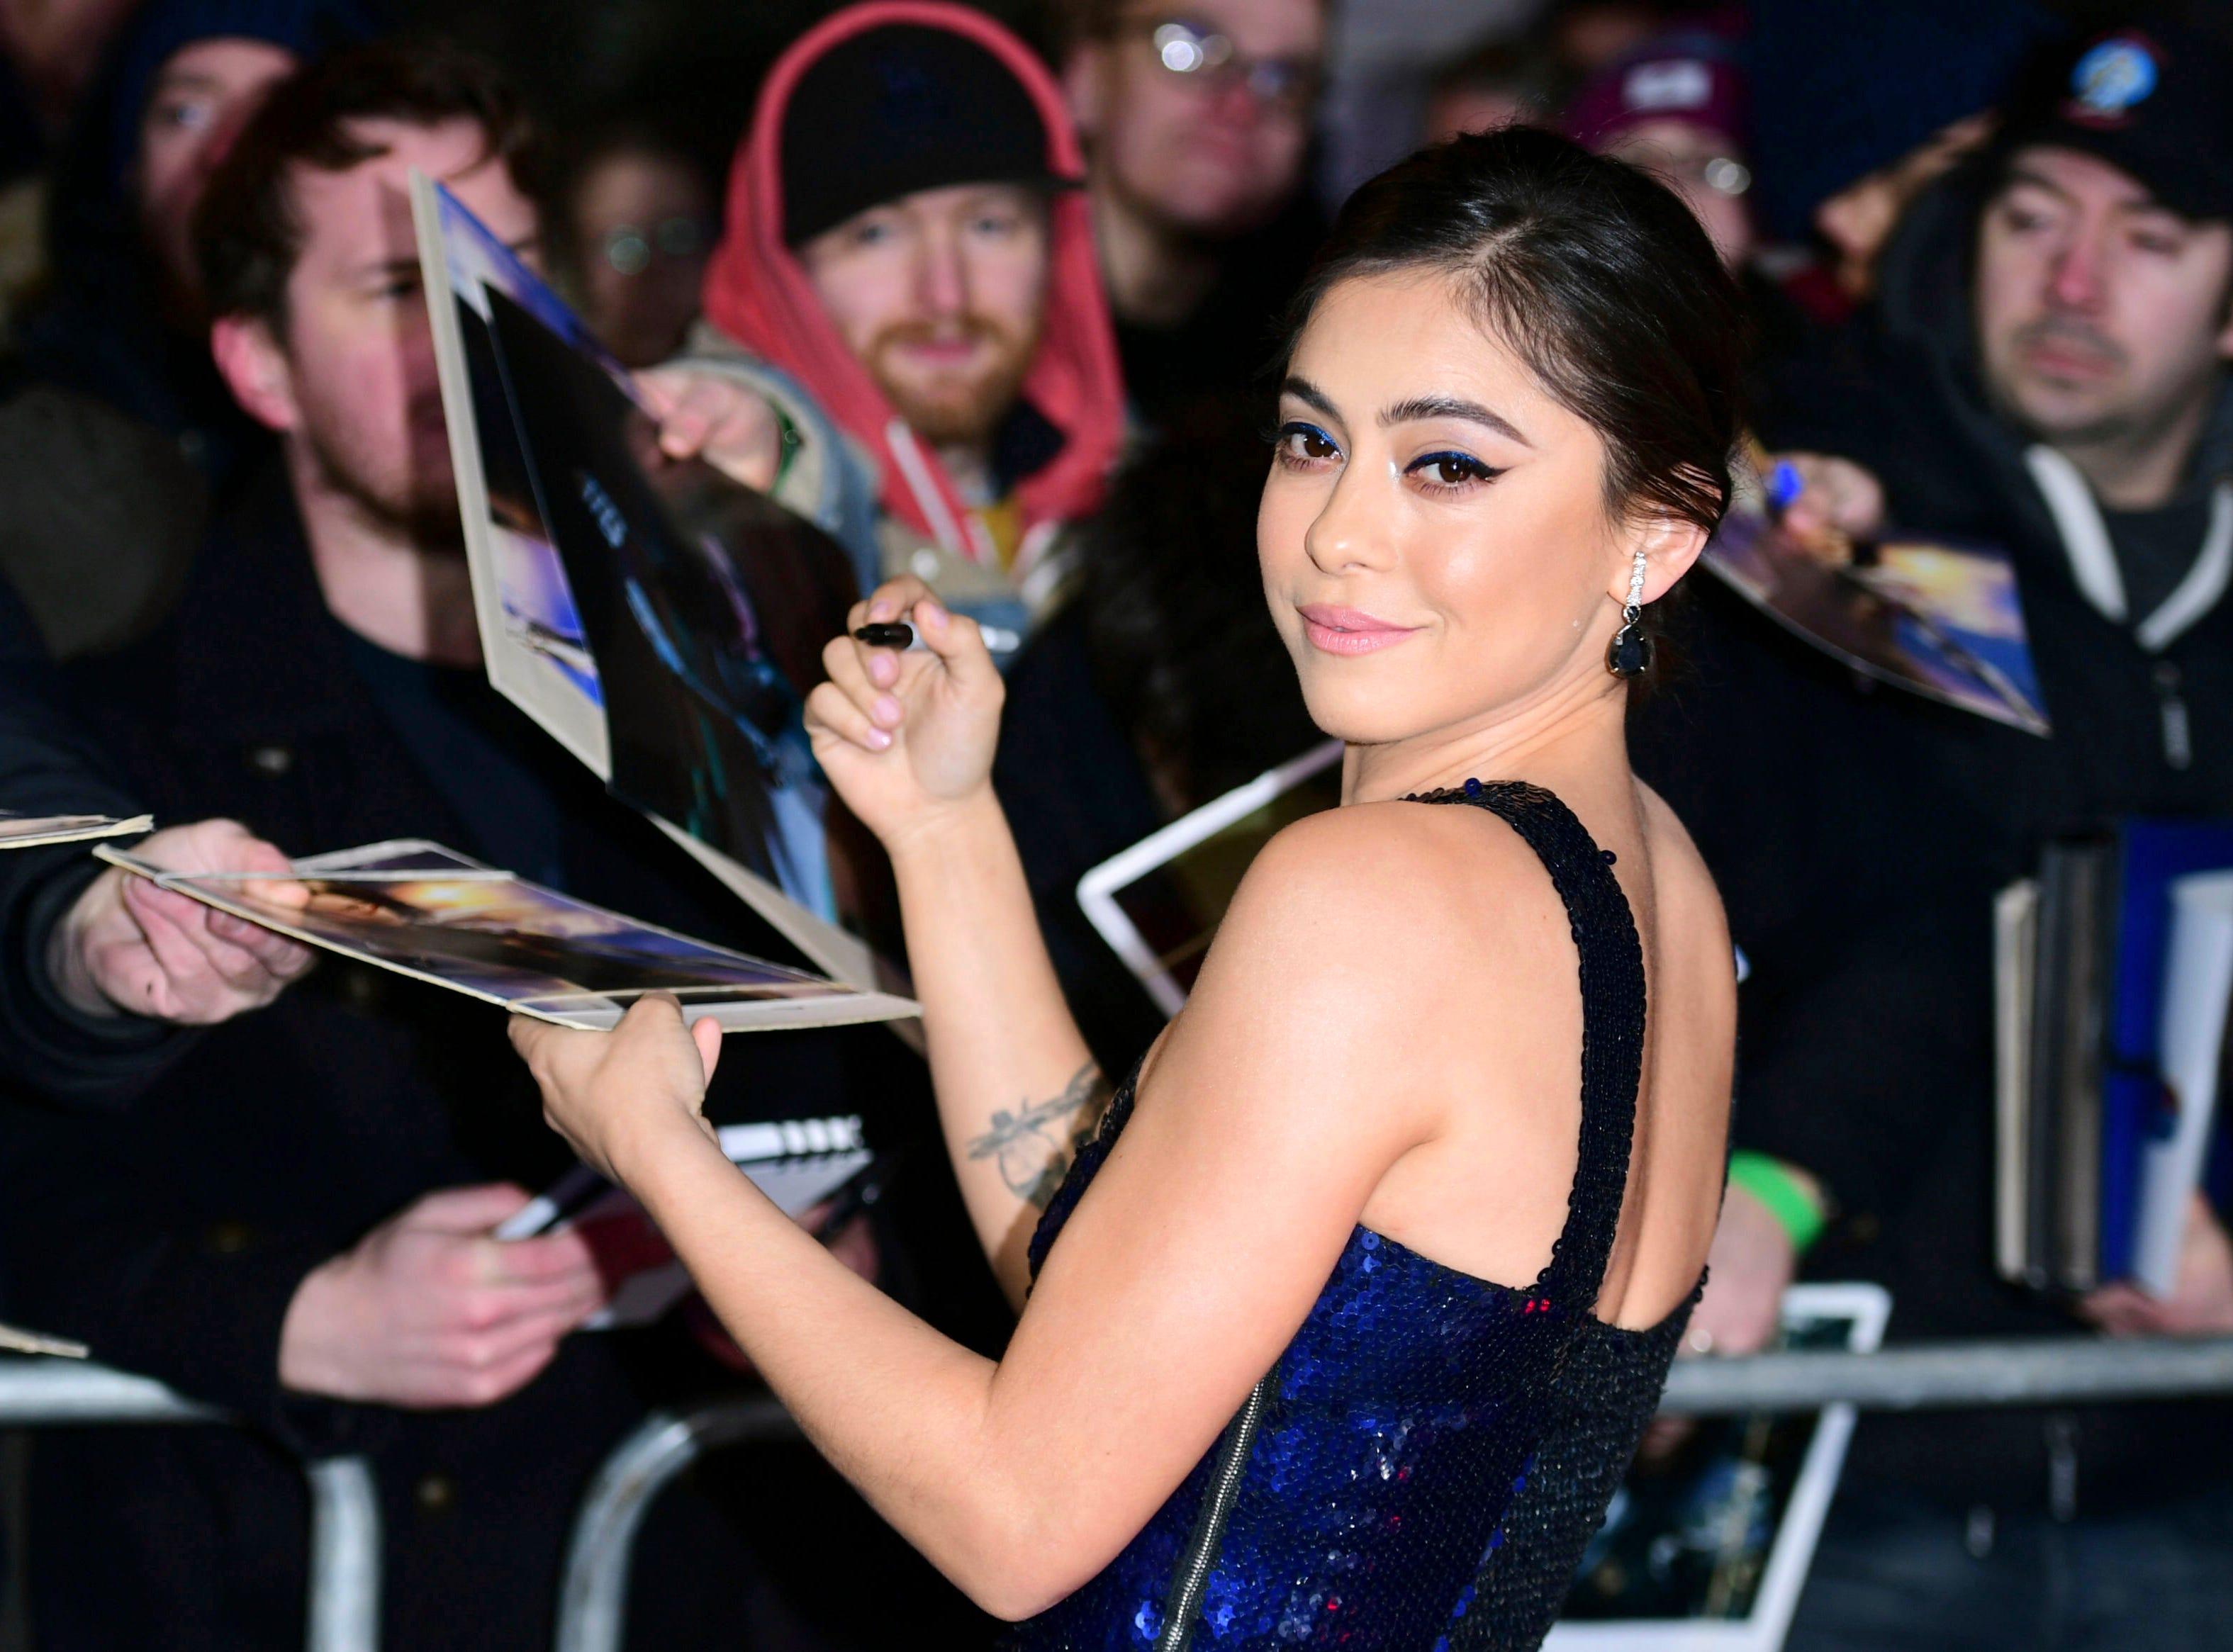 """Actress Rosa Salazar poses for the media while interacting with fans at the world premiere of """"Alita: Battle Angel"""" in central London, Thursday, Jan. 31, 2019."""